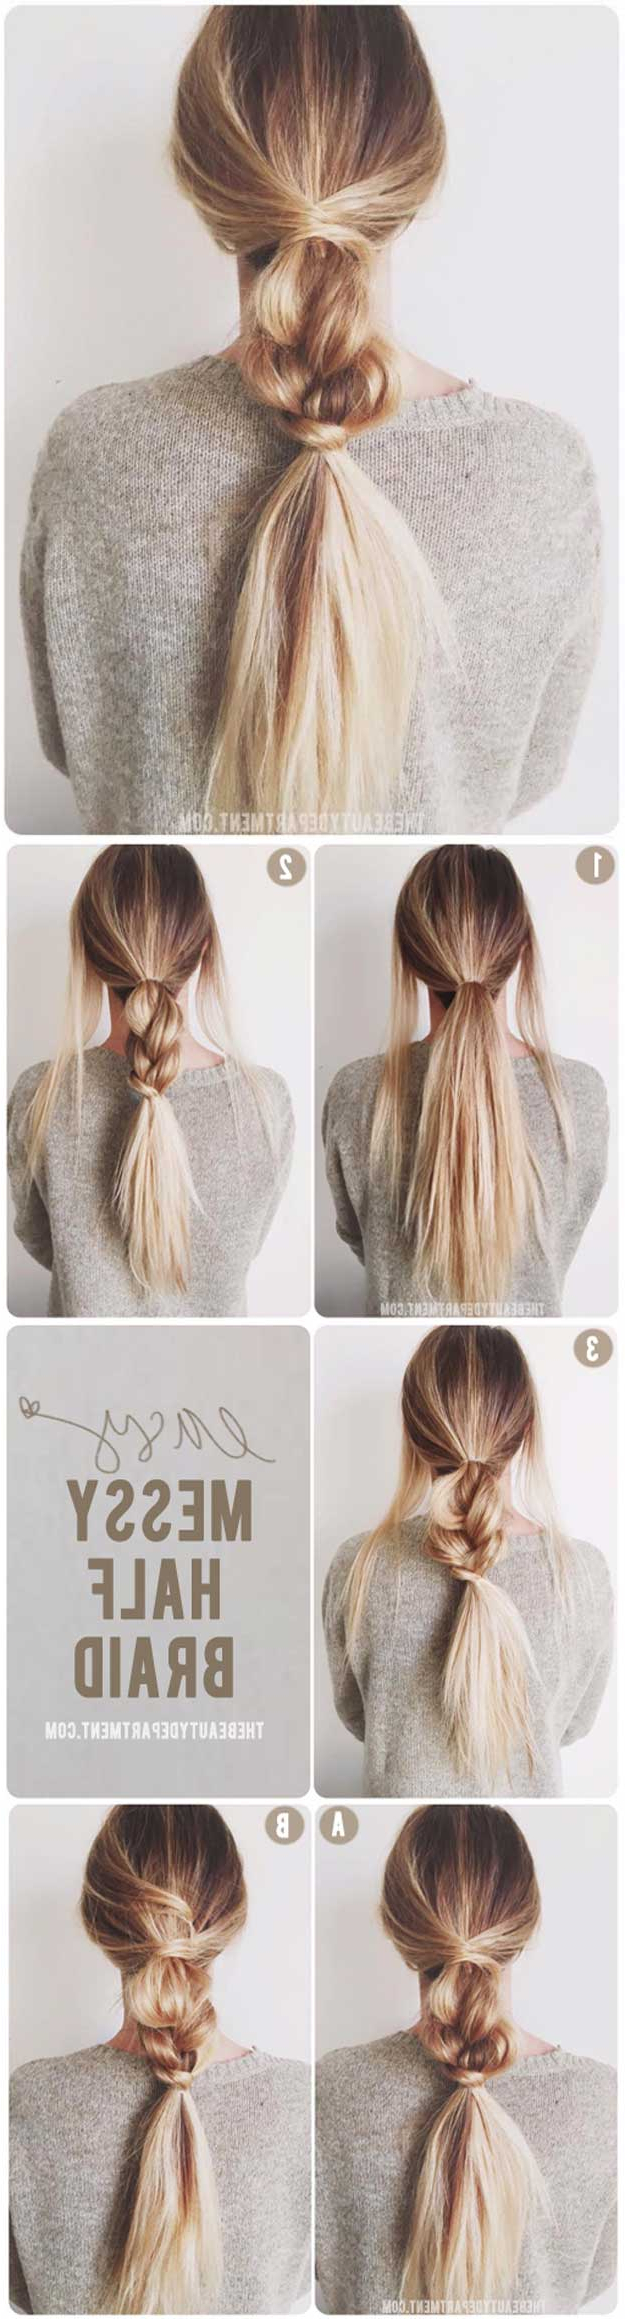 33 Best Hairstyles For Teens – The Goddess For Short Hairstyles For Juniors (View 20 of 25)